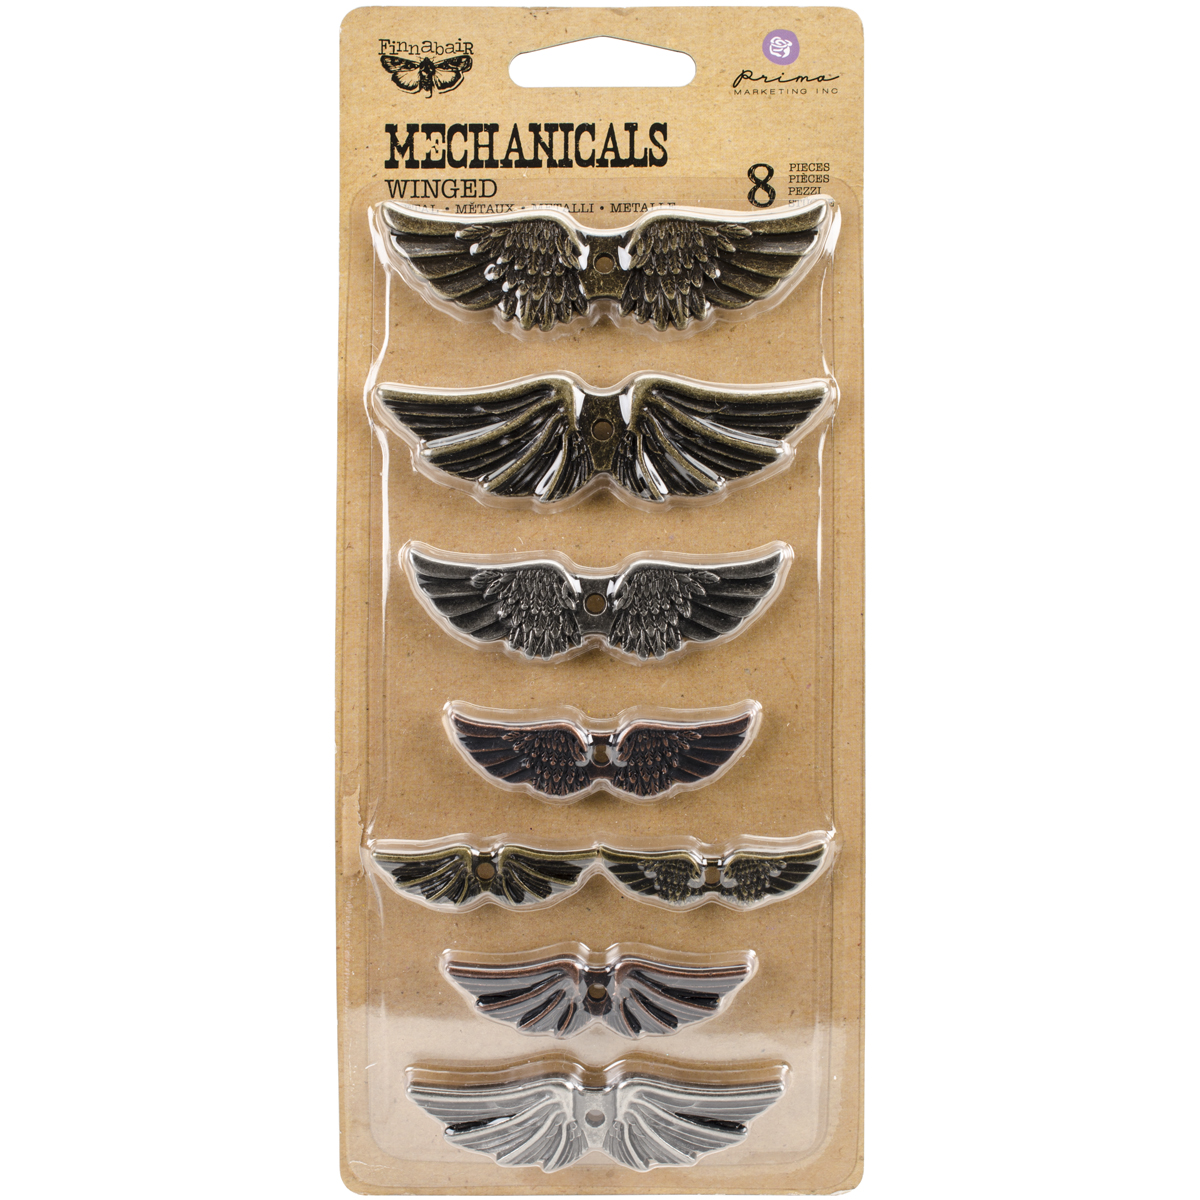 Mechanicals Winged